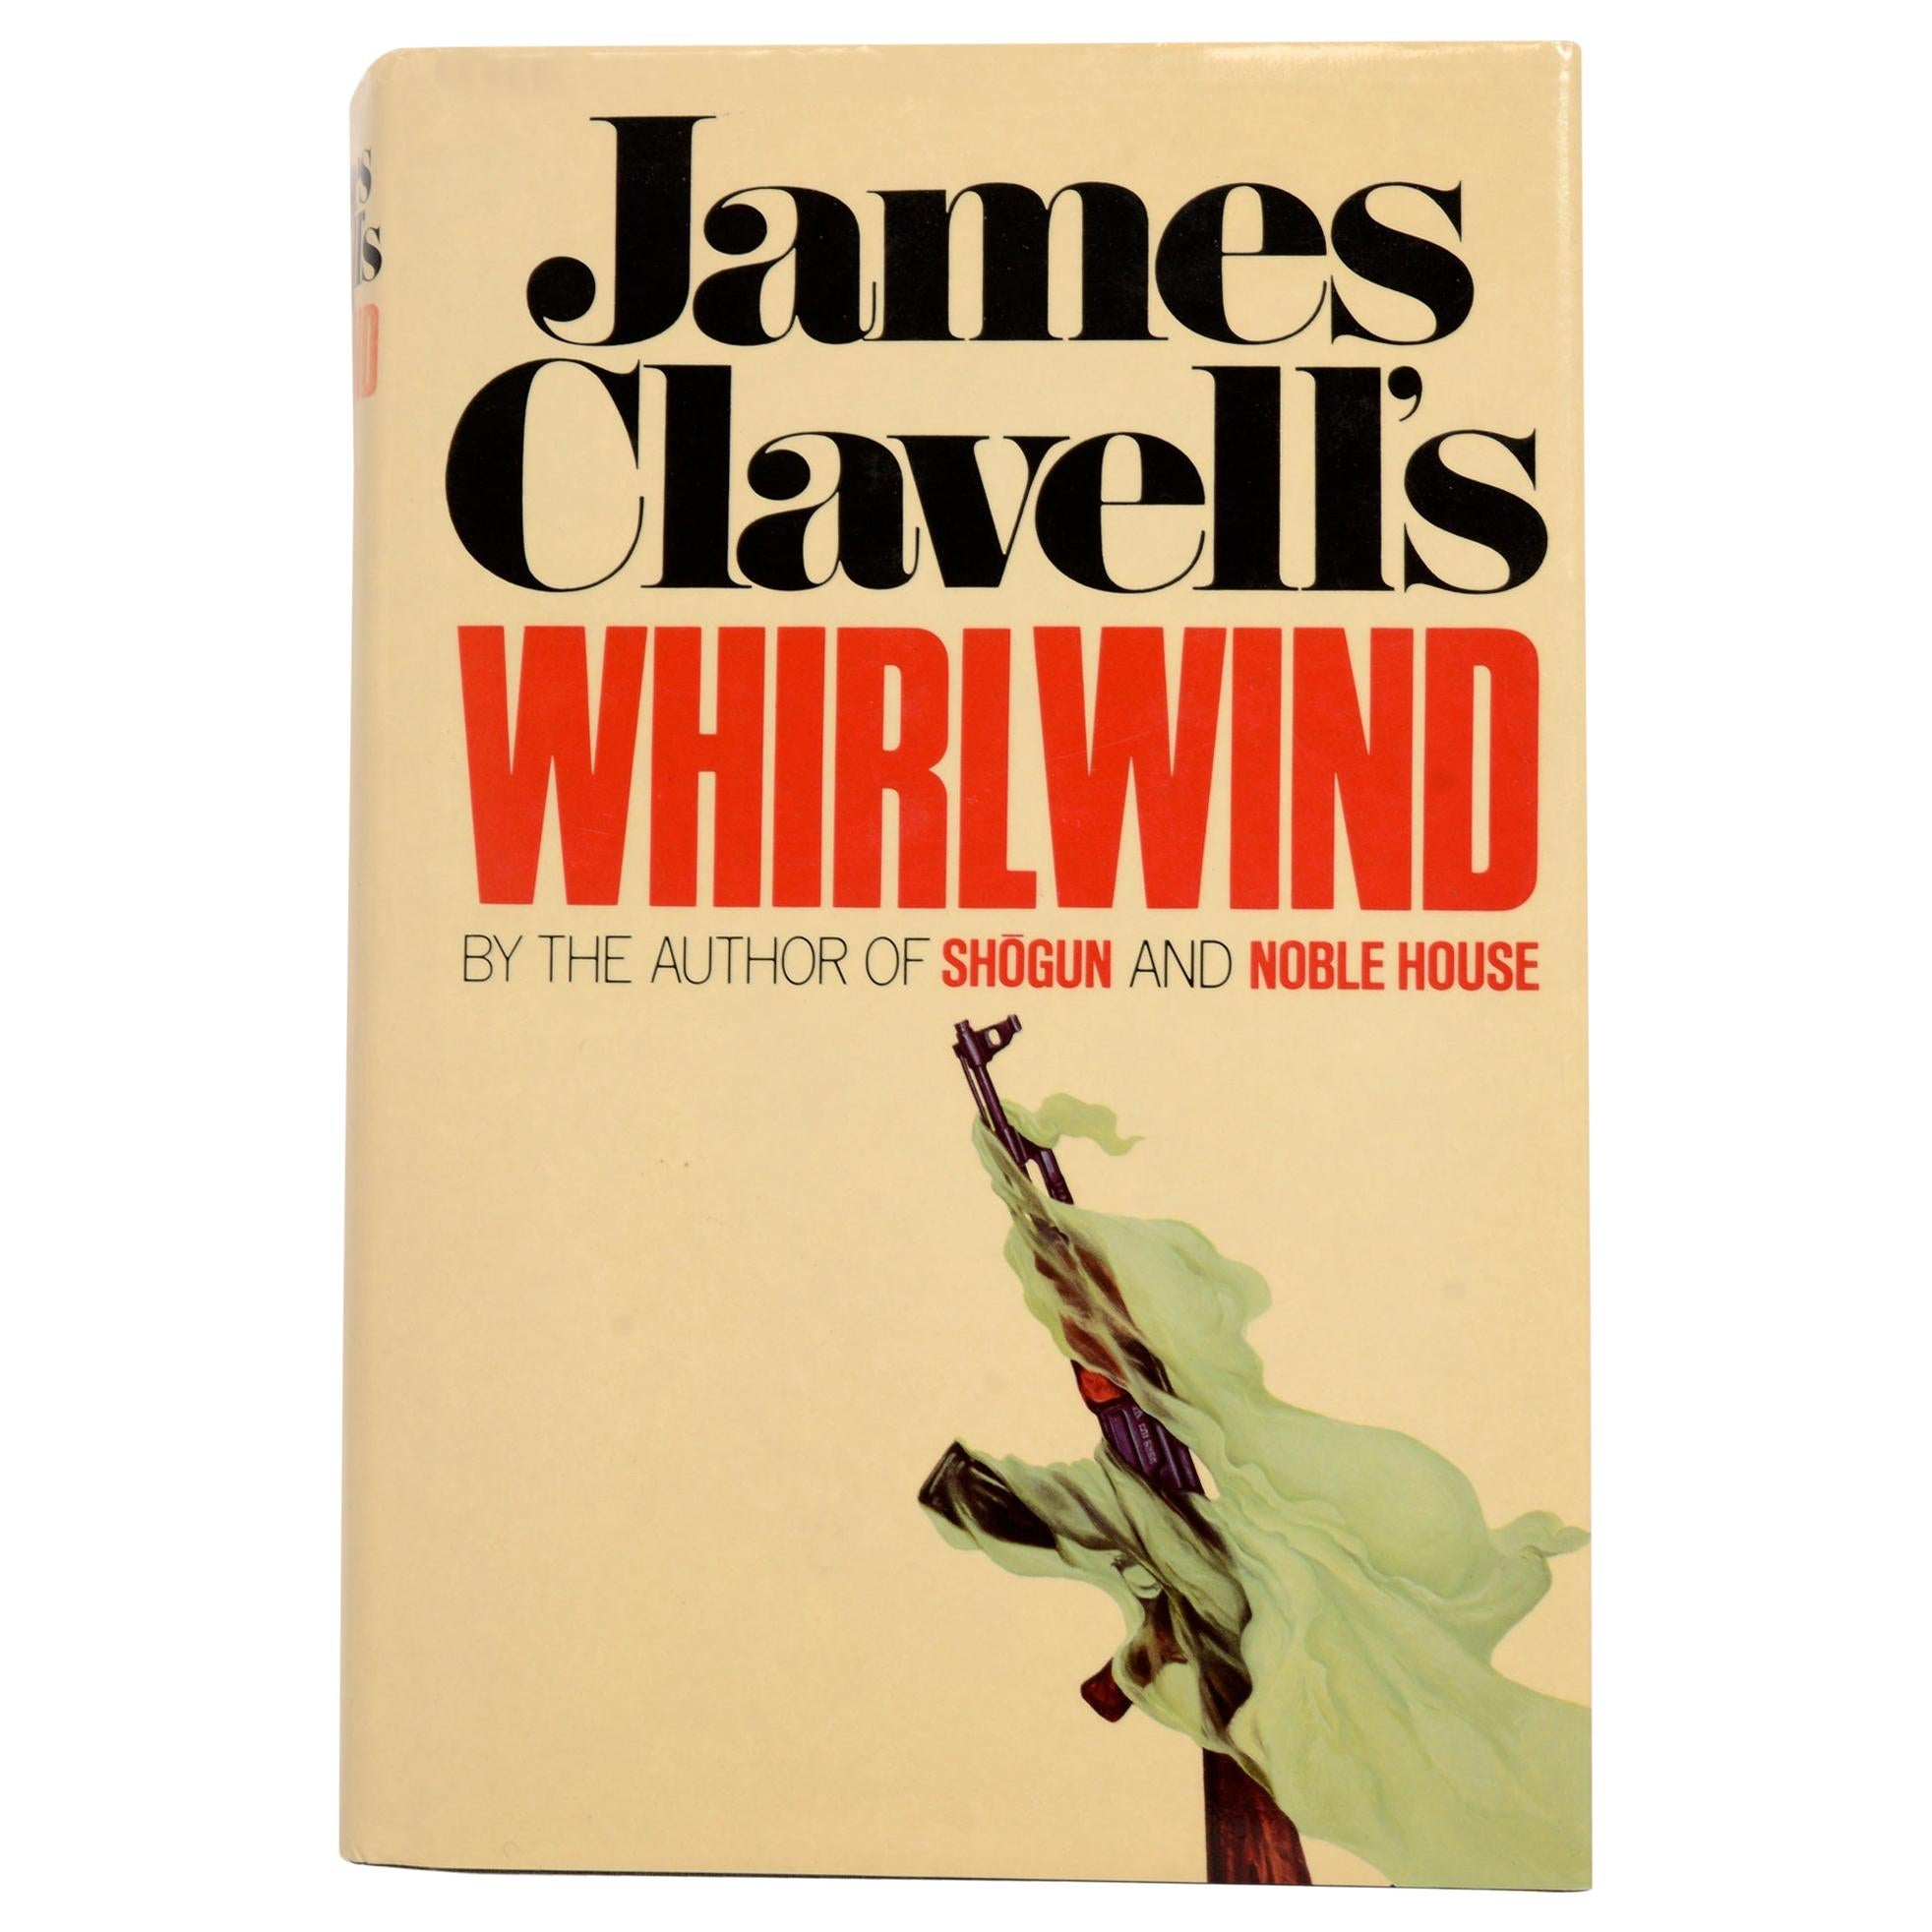 Whirlwind by James Clavell Stated First Edition